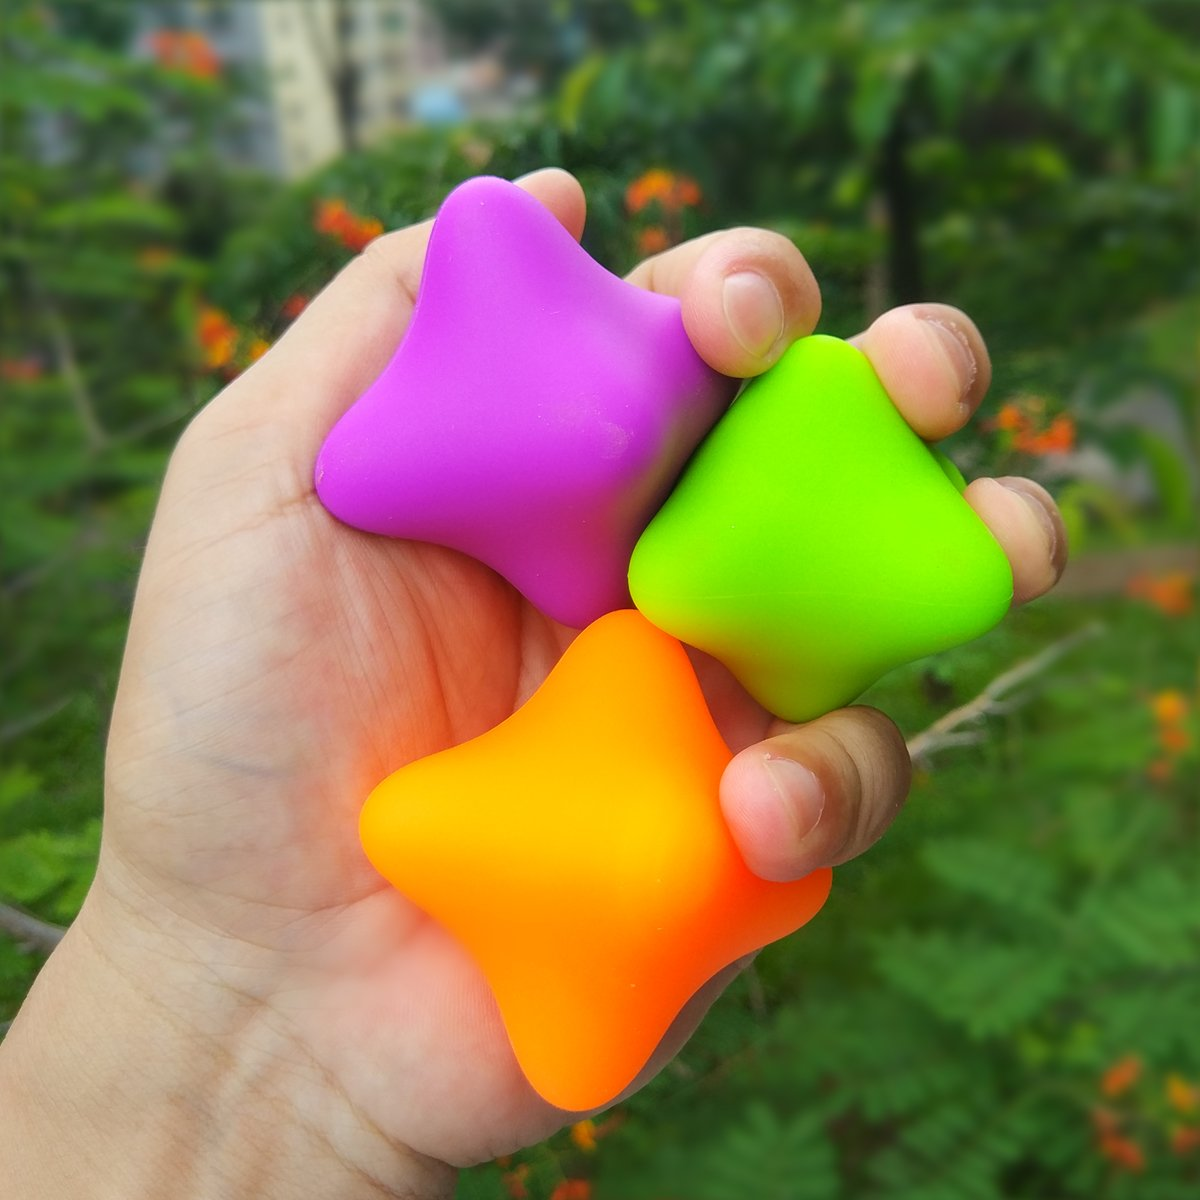 Kontii Stress Ball Fidget Anxiety Reliever for Adults Kids with ADHD//OCD//Autism 3 Pack Stress Relief Toys for Hand Grip Strengthen Finger Exercise